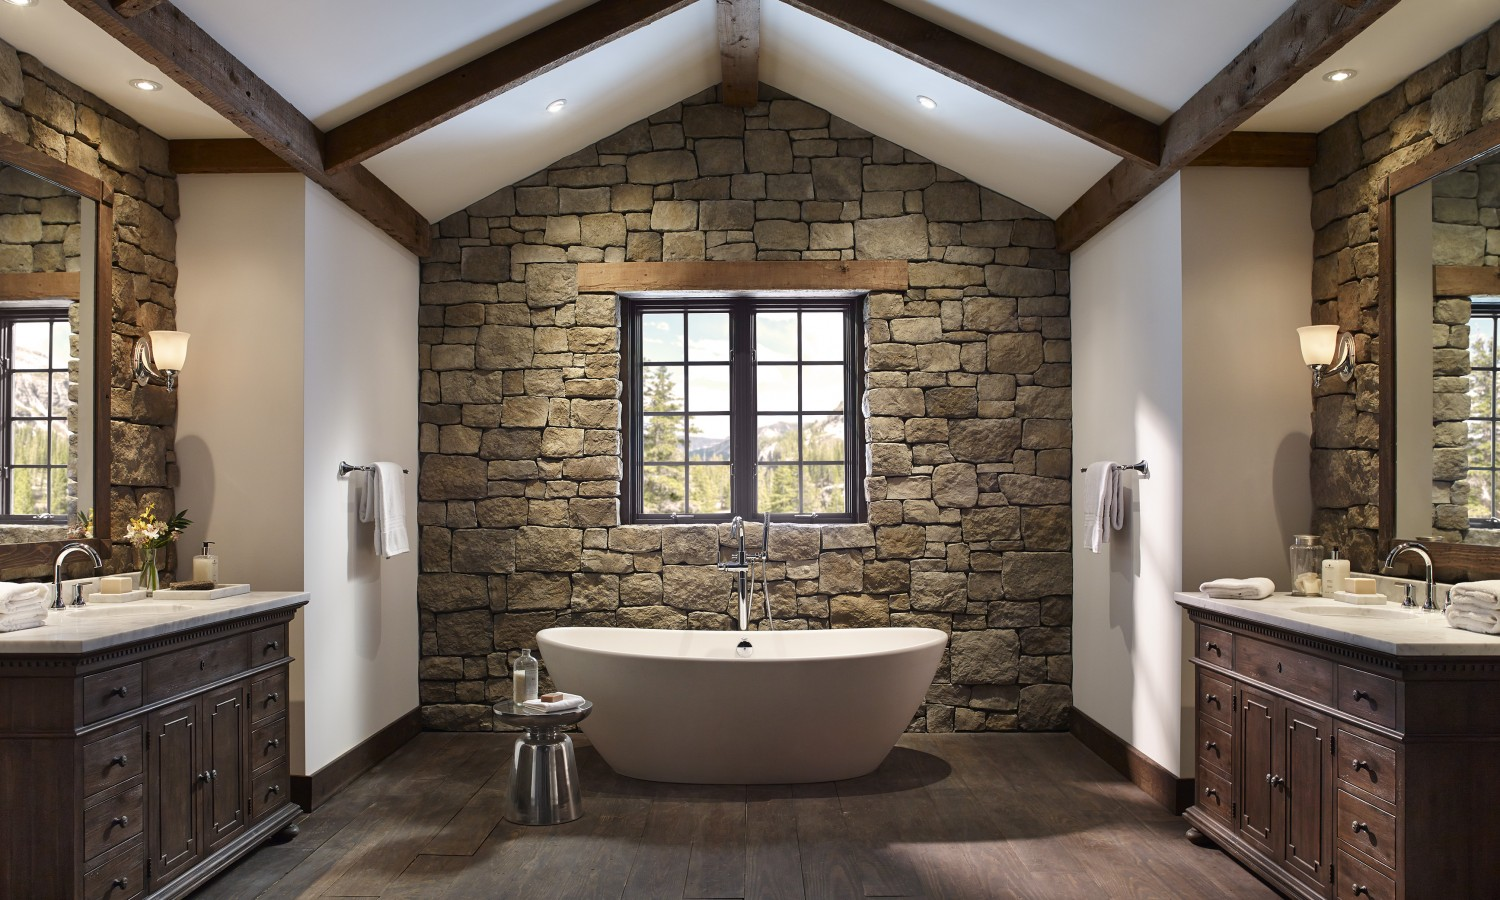 Stone Wall With A Window Among